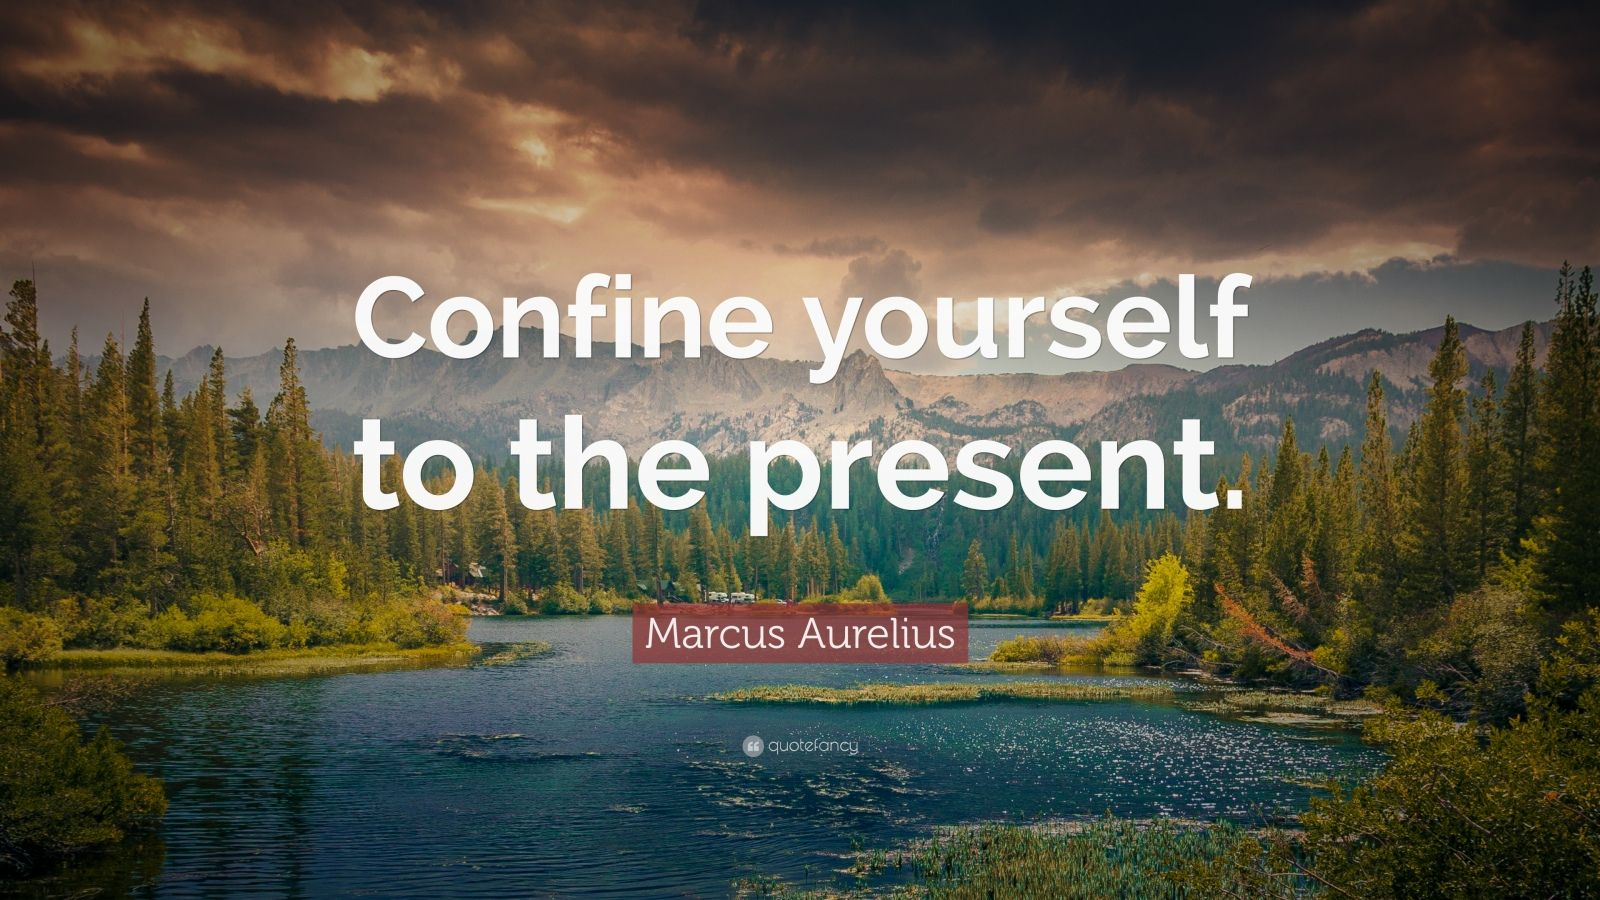 Dalai Lama Quotes Wallpaper Marcus Aurelius Quote Confine Yourself To The Present